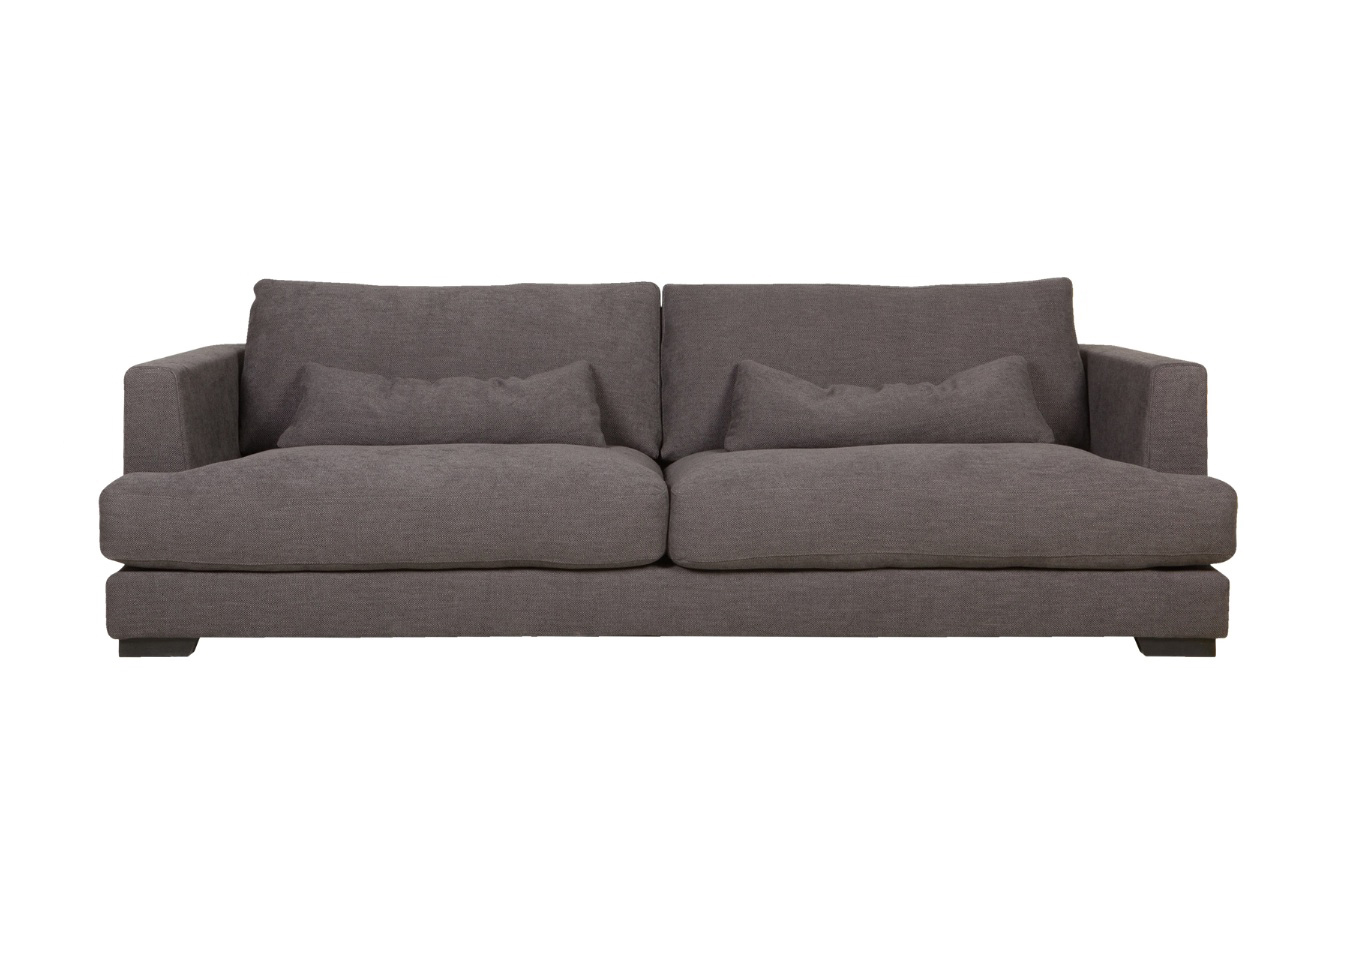 Conrad 2 Seater Sofa-30212